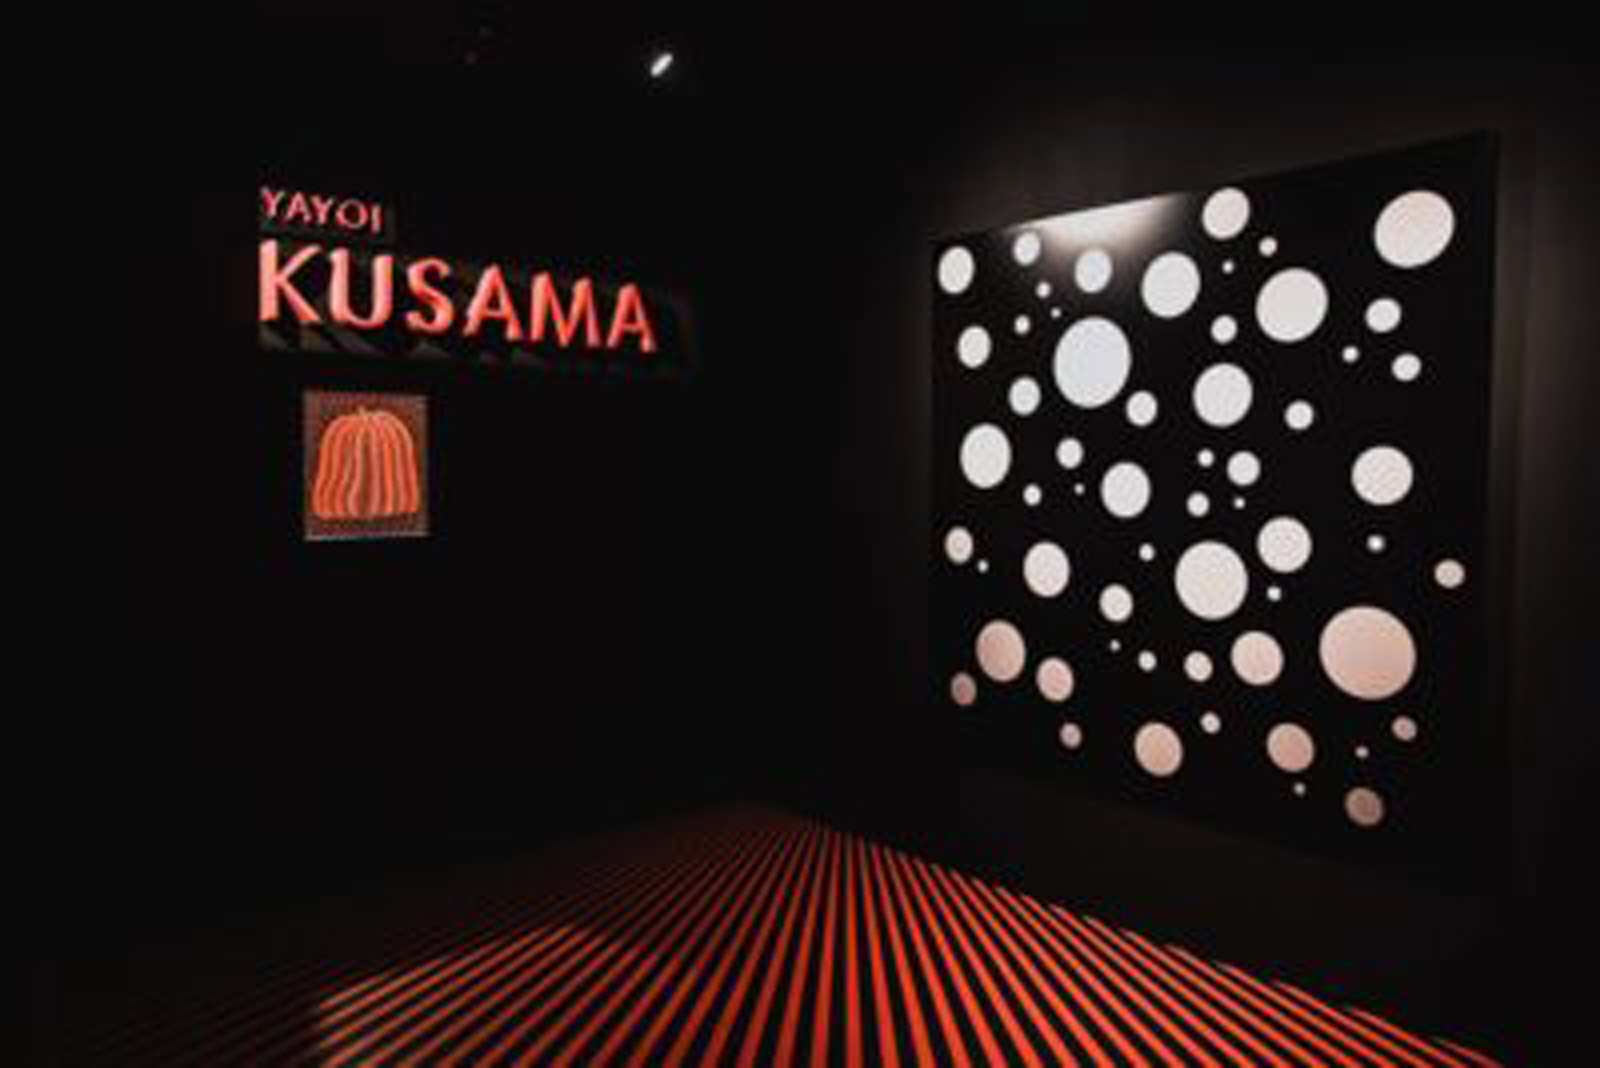 Kusama dot art